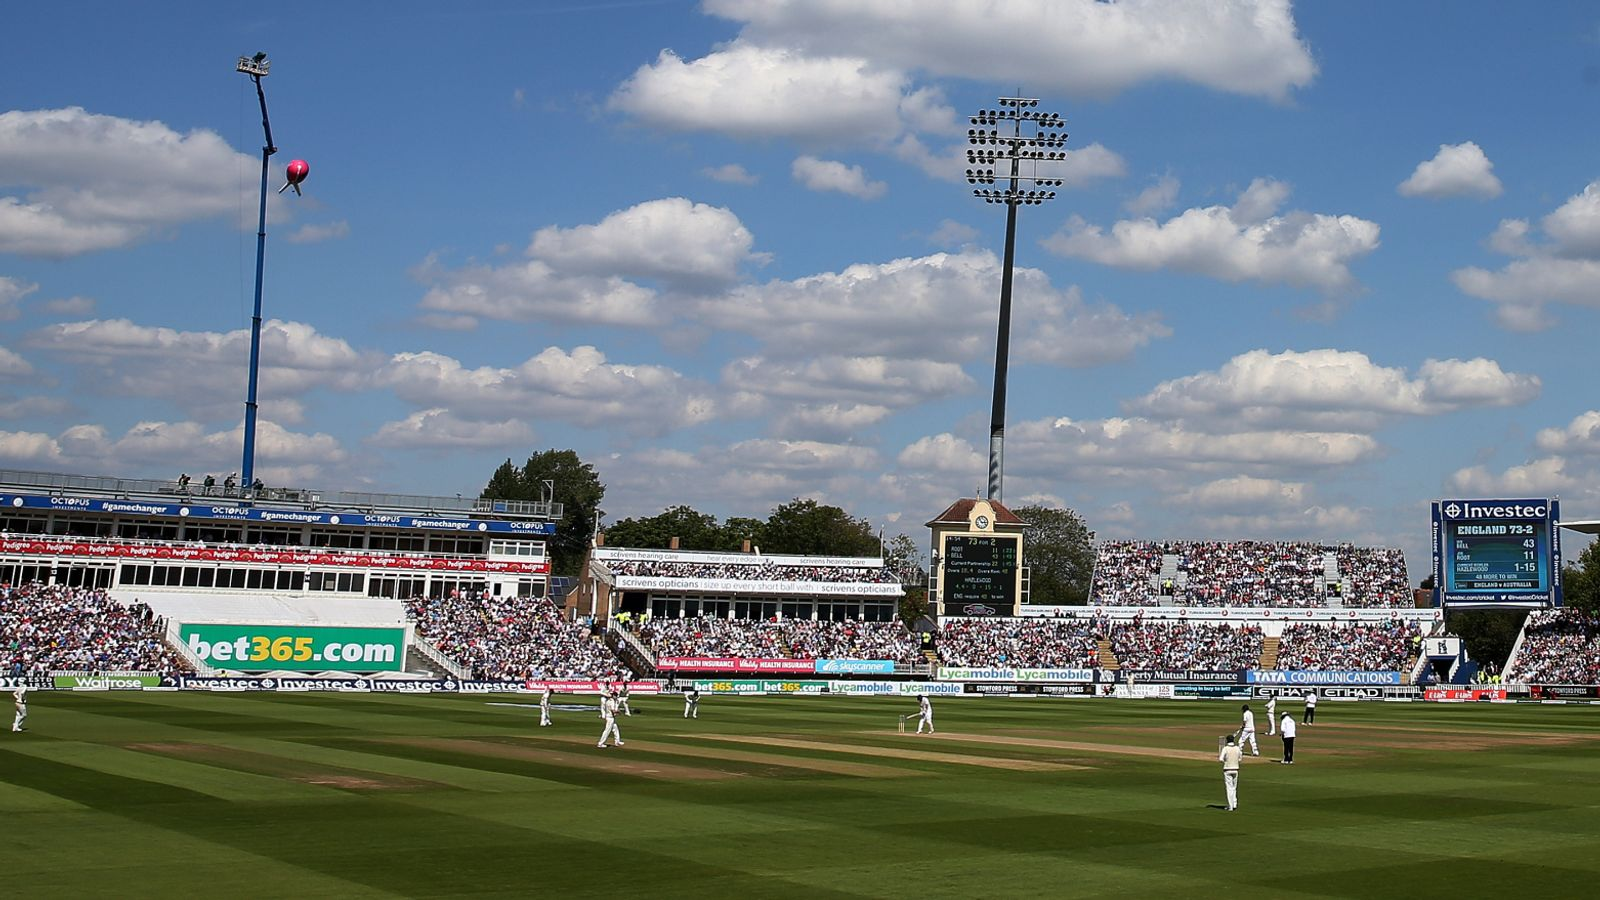 England vs New Zealand: Edgbaston in talks with Government over increased crowds for June Test